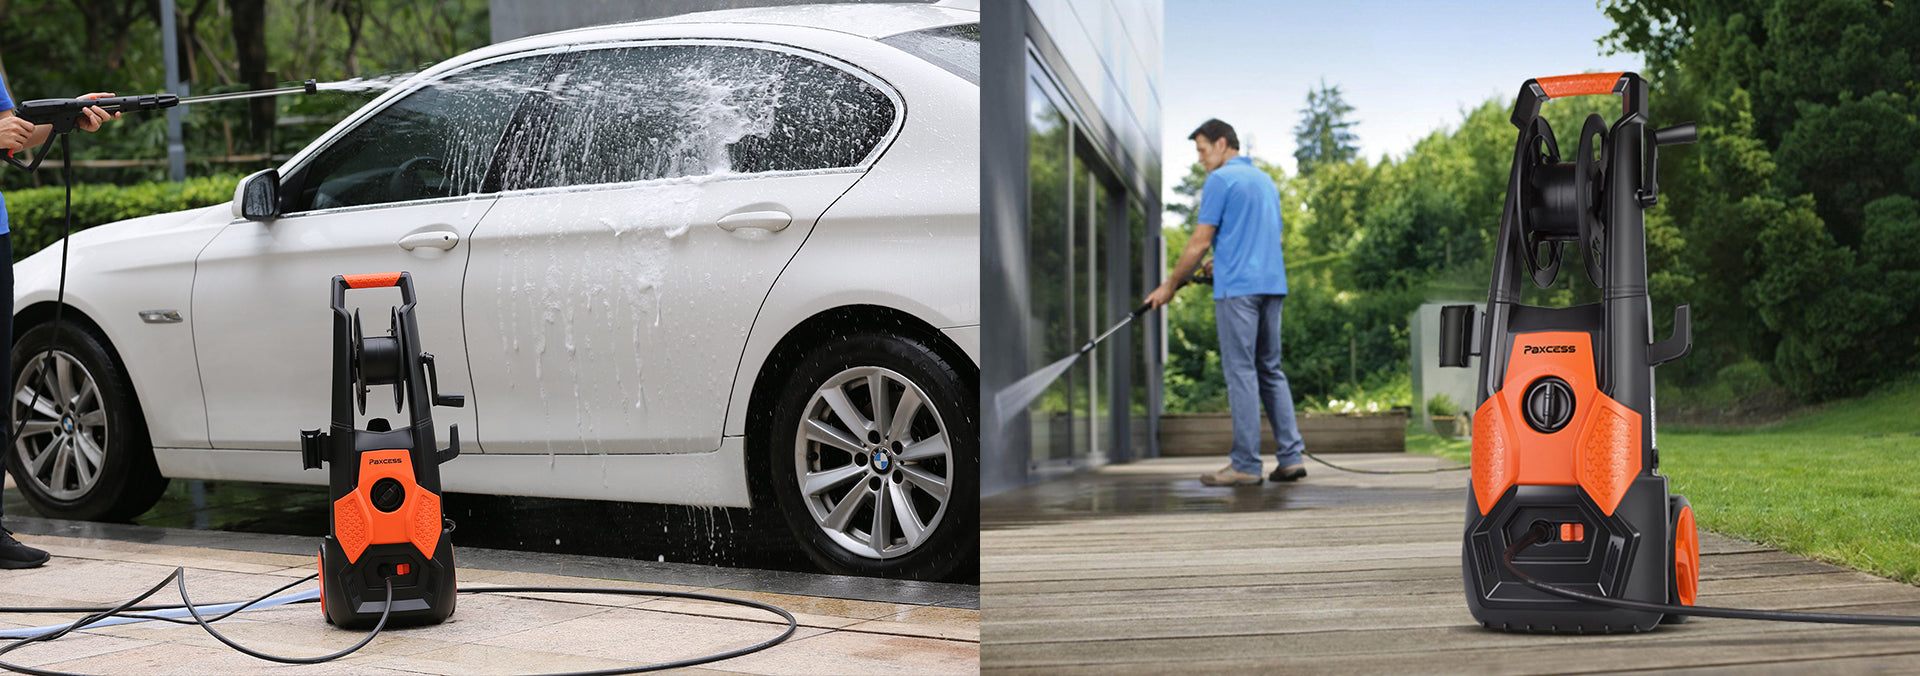 2150psi Pressure Washer Cleaning Car & Floor